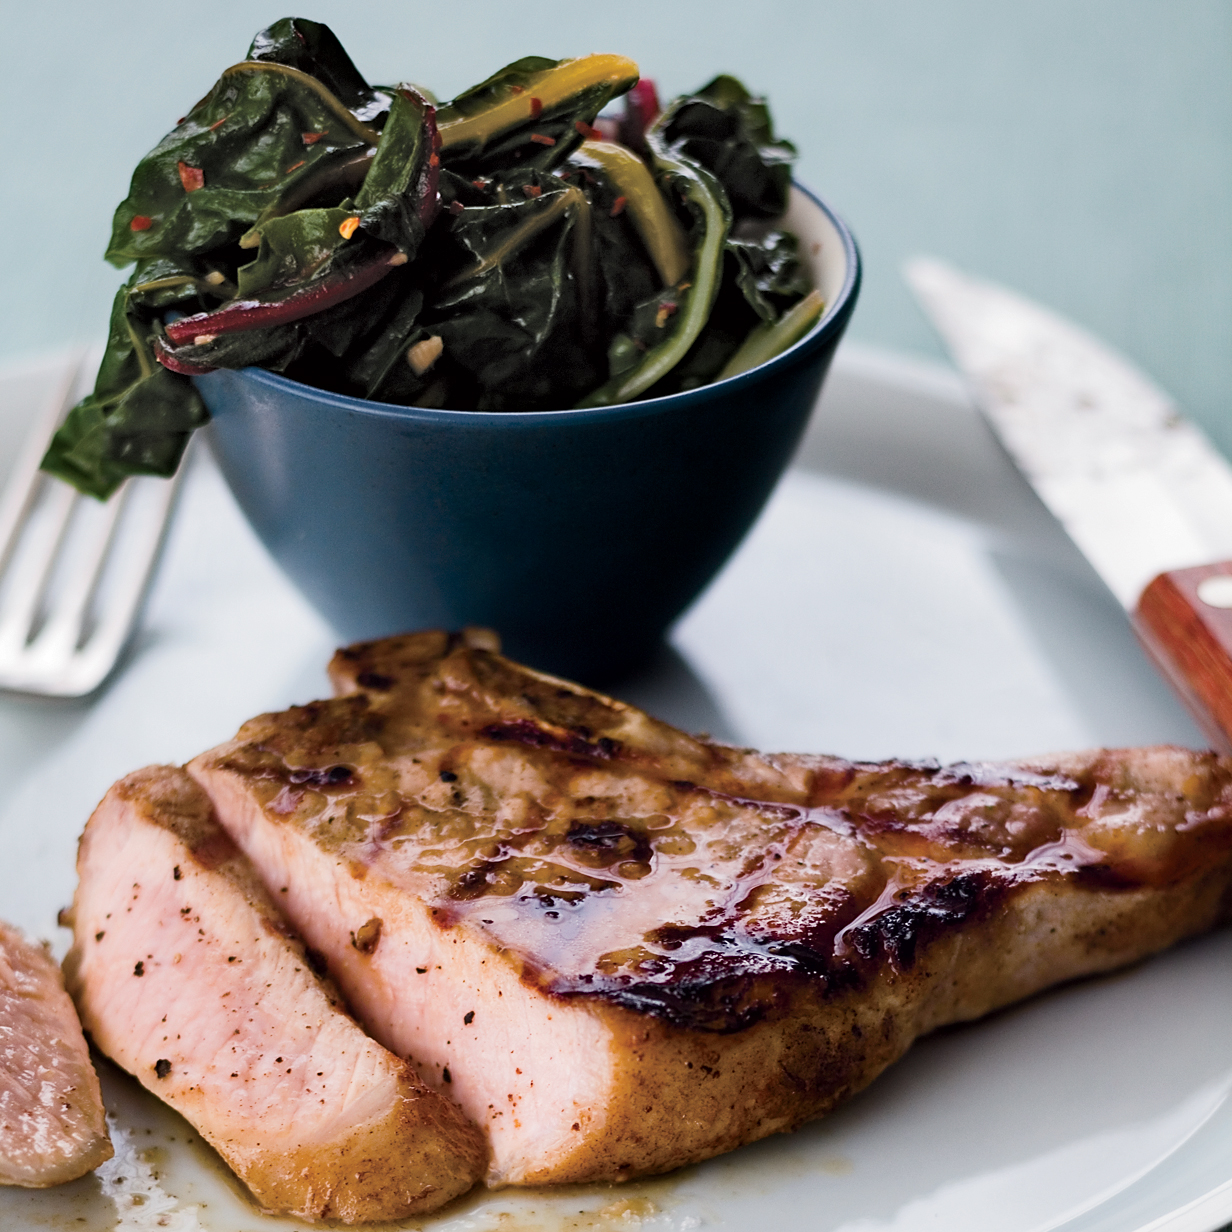 Grilled Pork Chops with Anchovies and Swiss Chard